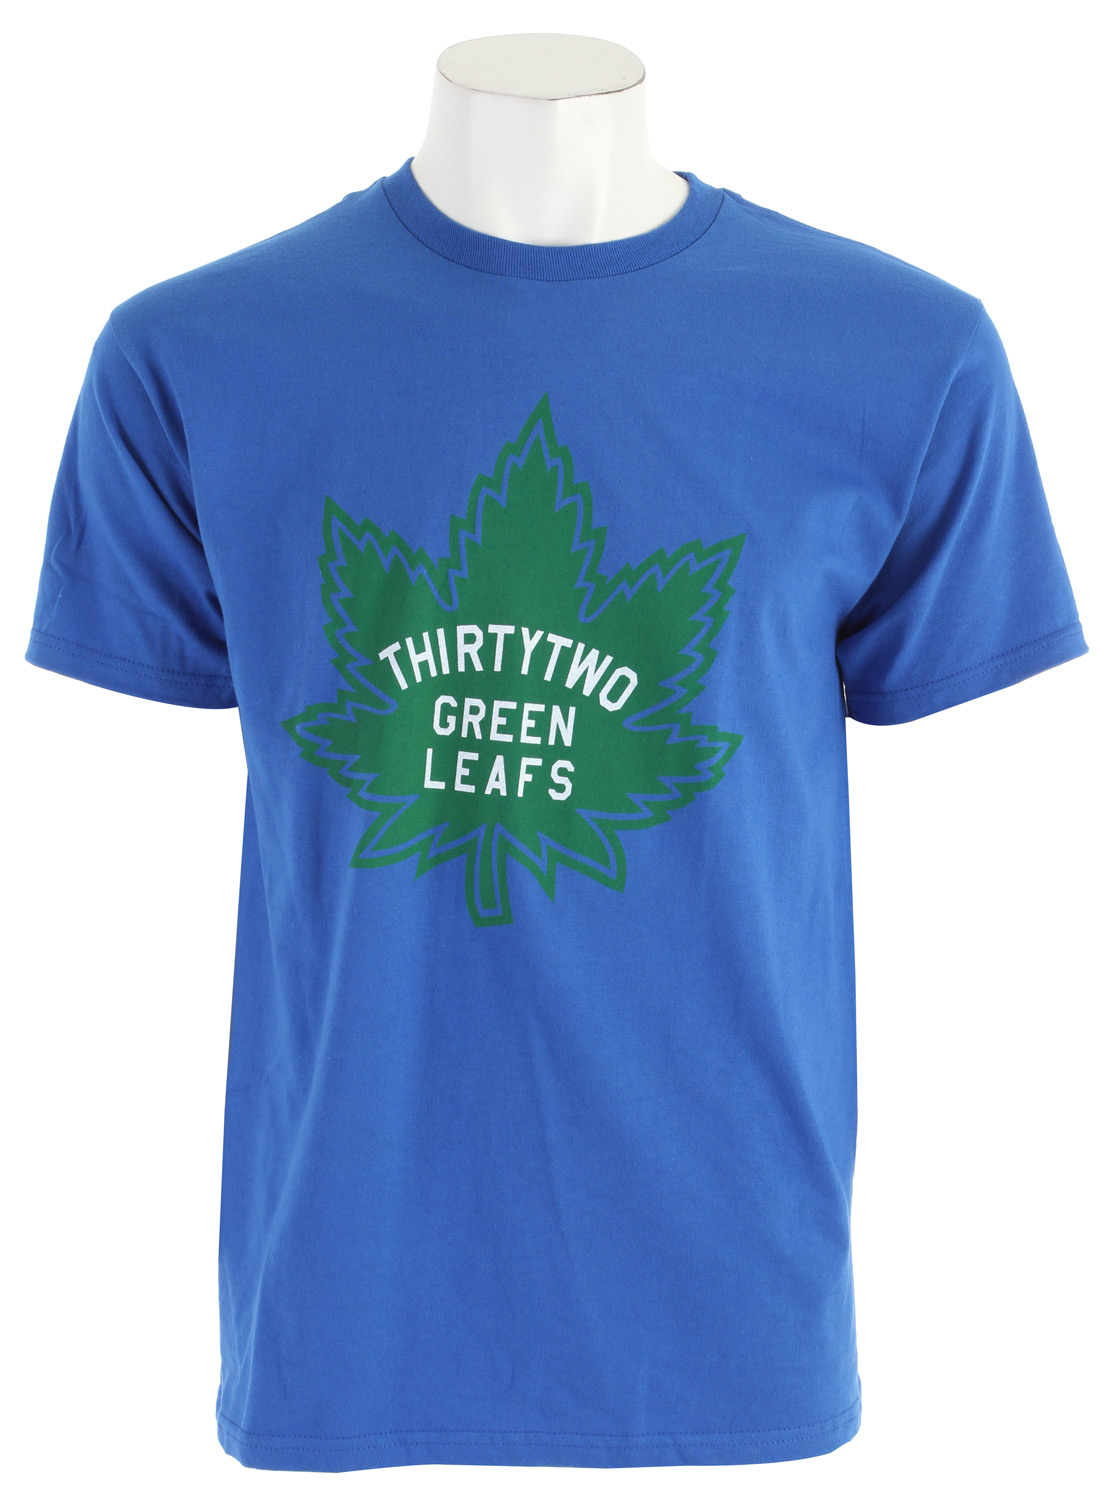 Key Features of The 32 - Thirty Two Green Leafs T-Shirt: Regular Fit Crew Neck Short Sleeve 100% Cotton Standard Fit Short Sleeve Shirt - $18.95